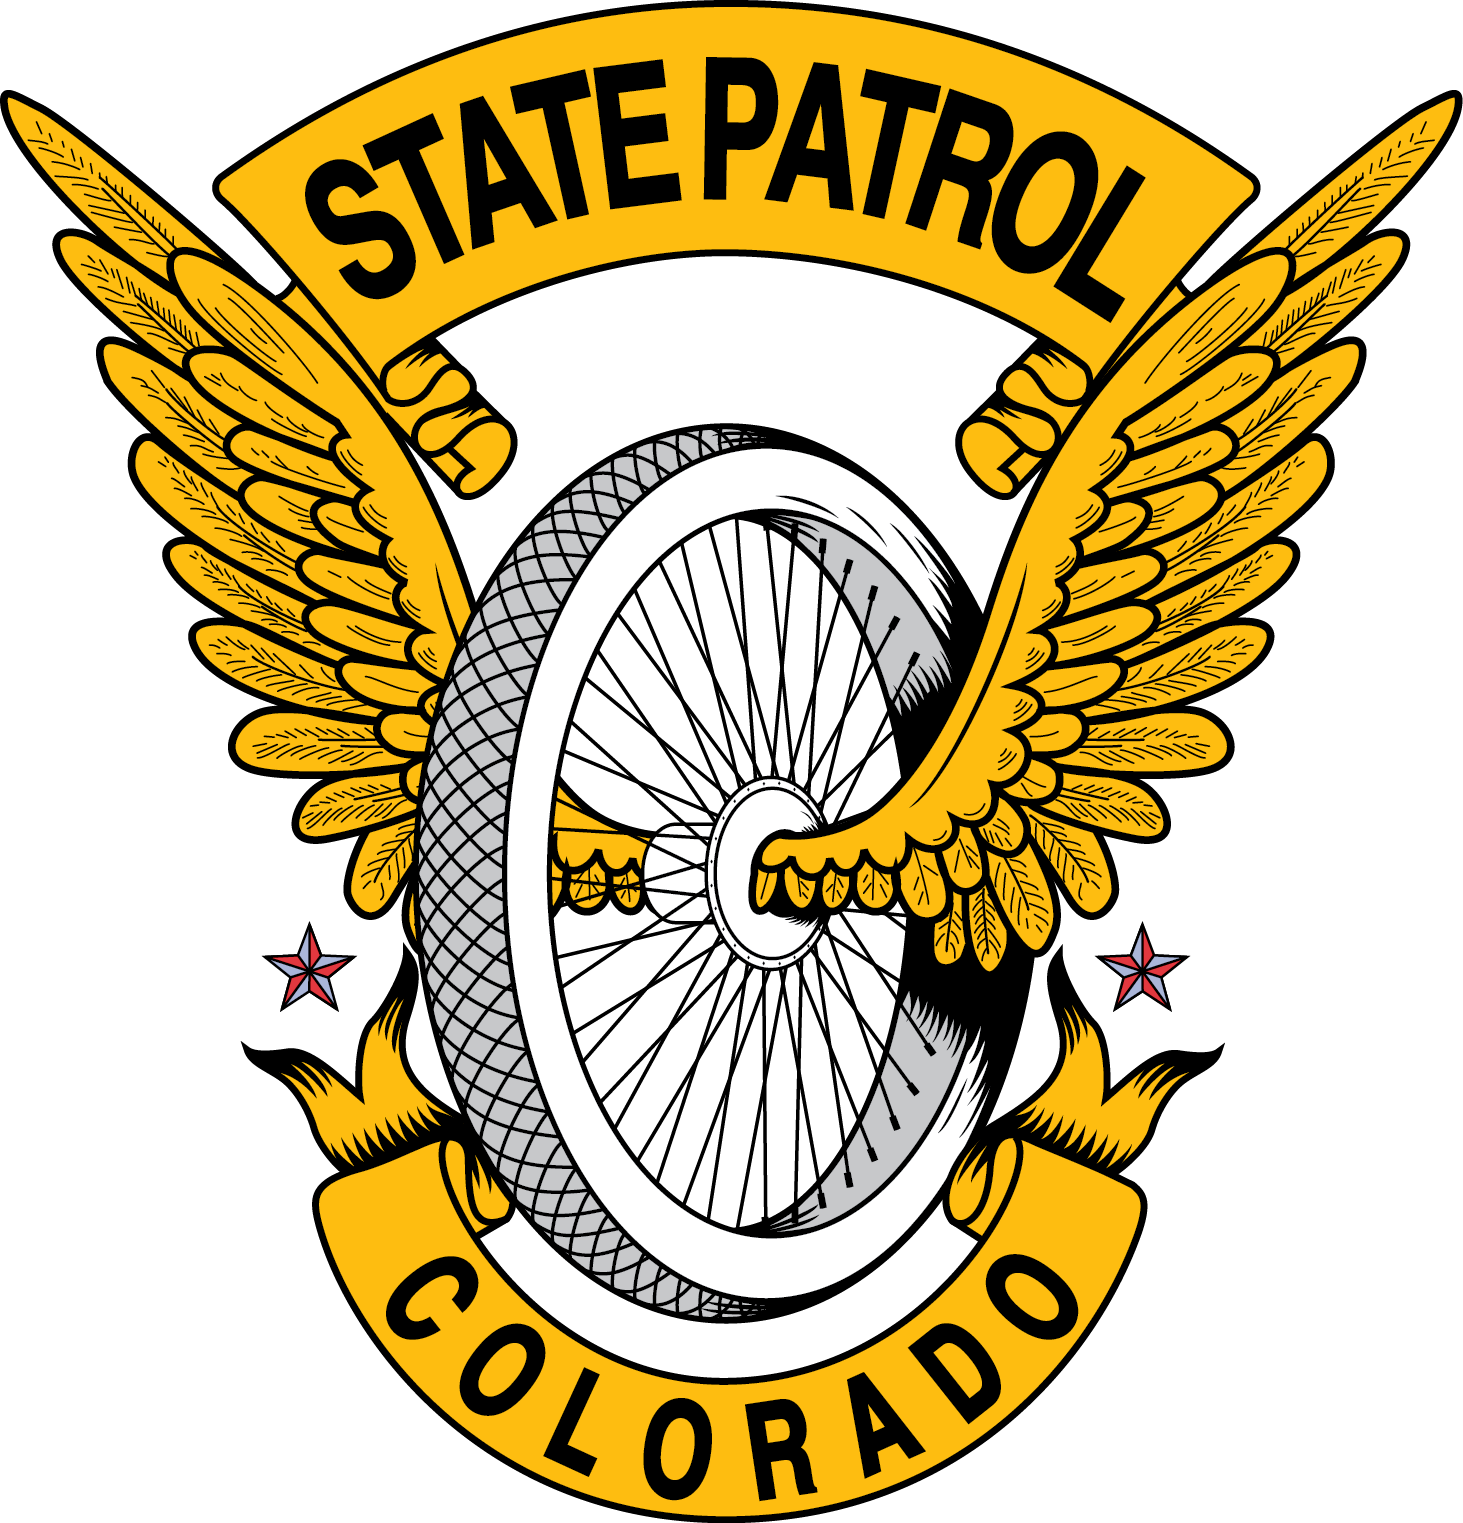 Patrol clipart patrol officer. Contact us colorado state